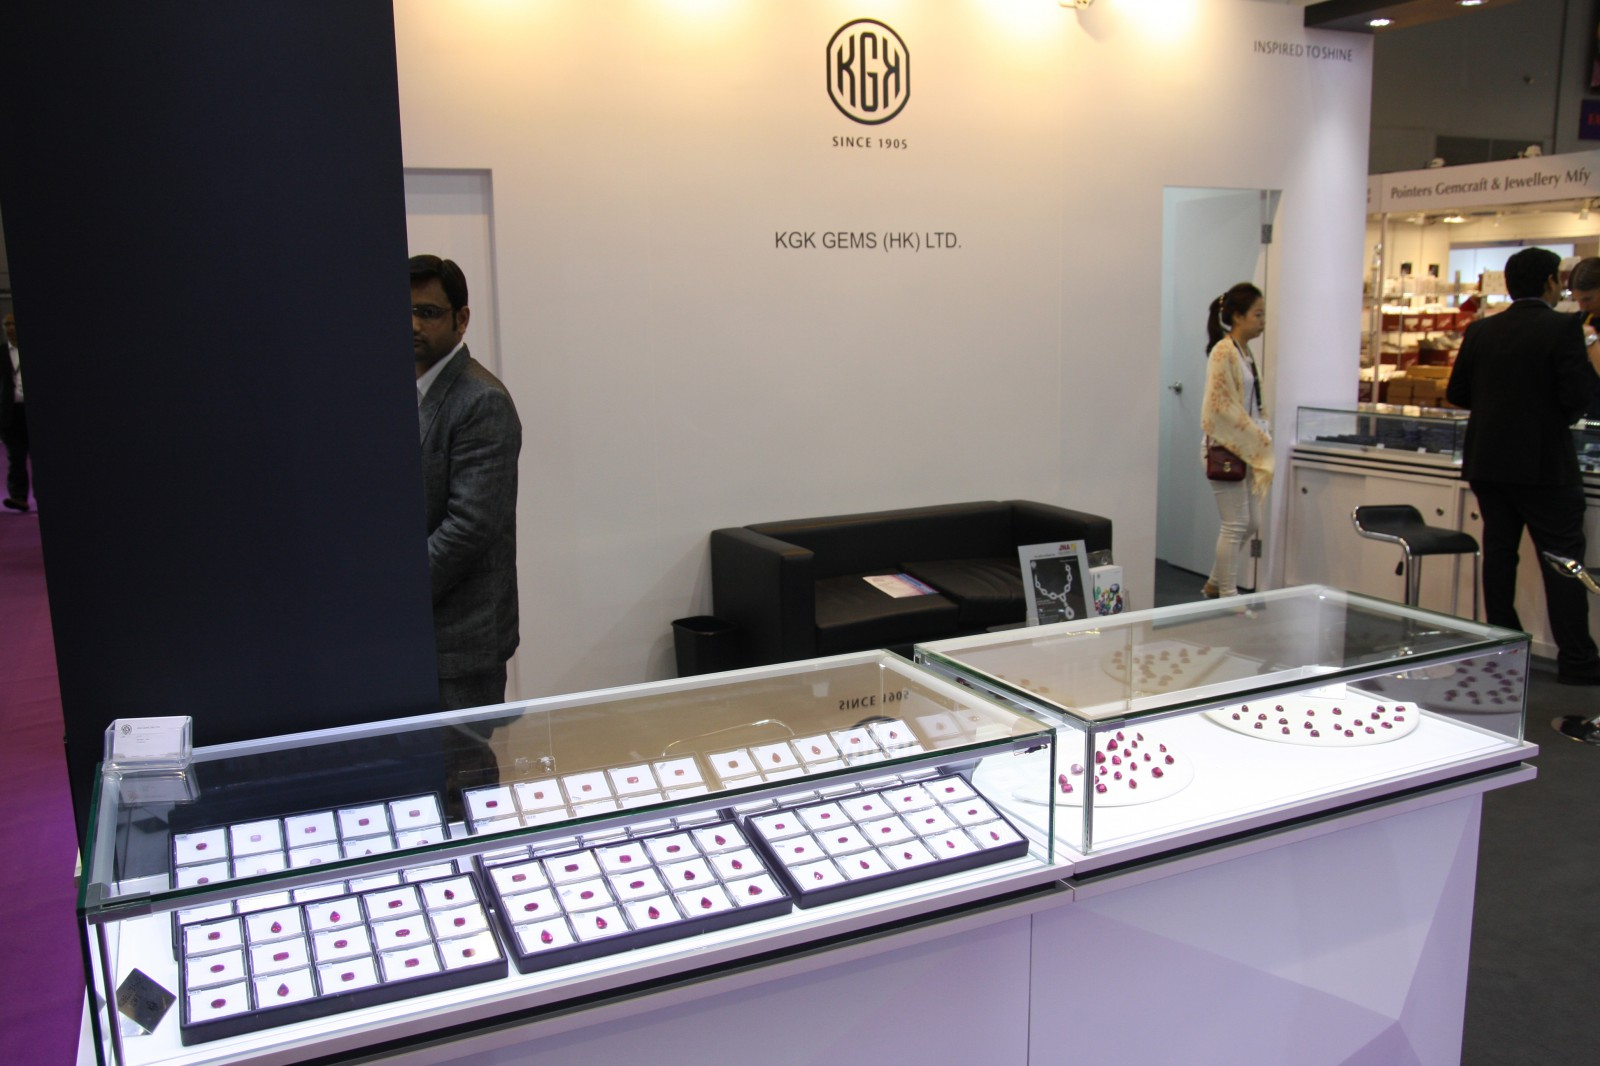 KGK Gems Inventory on display